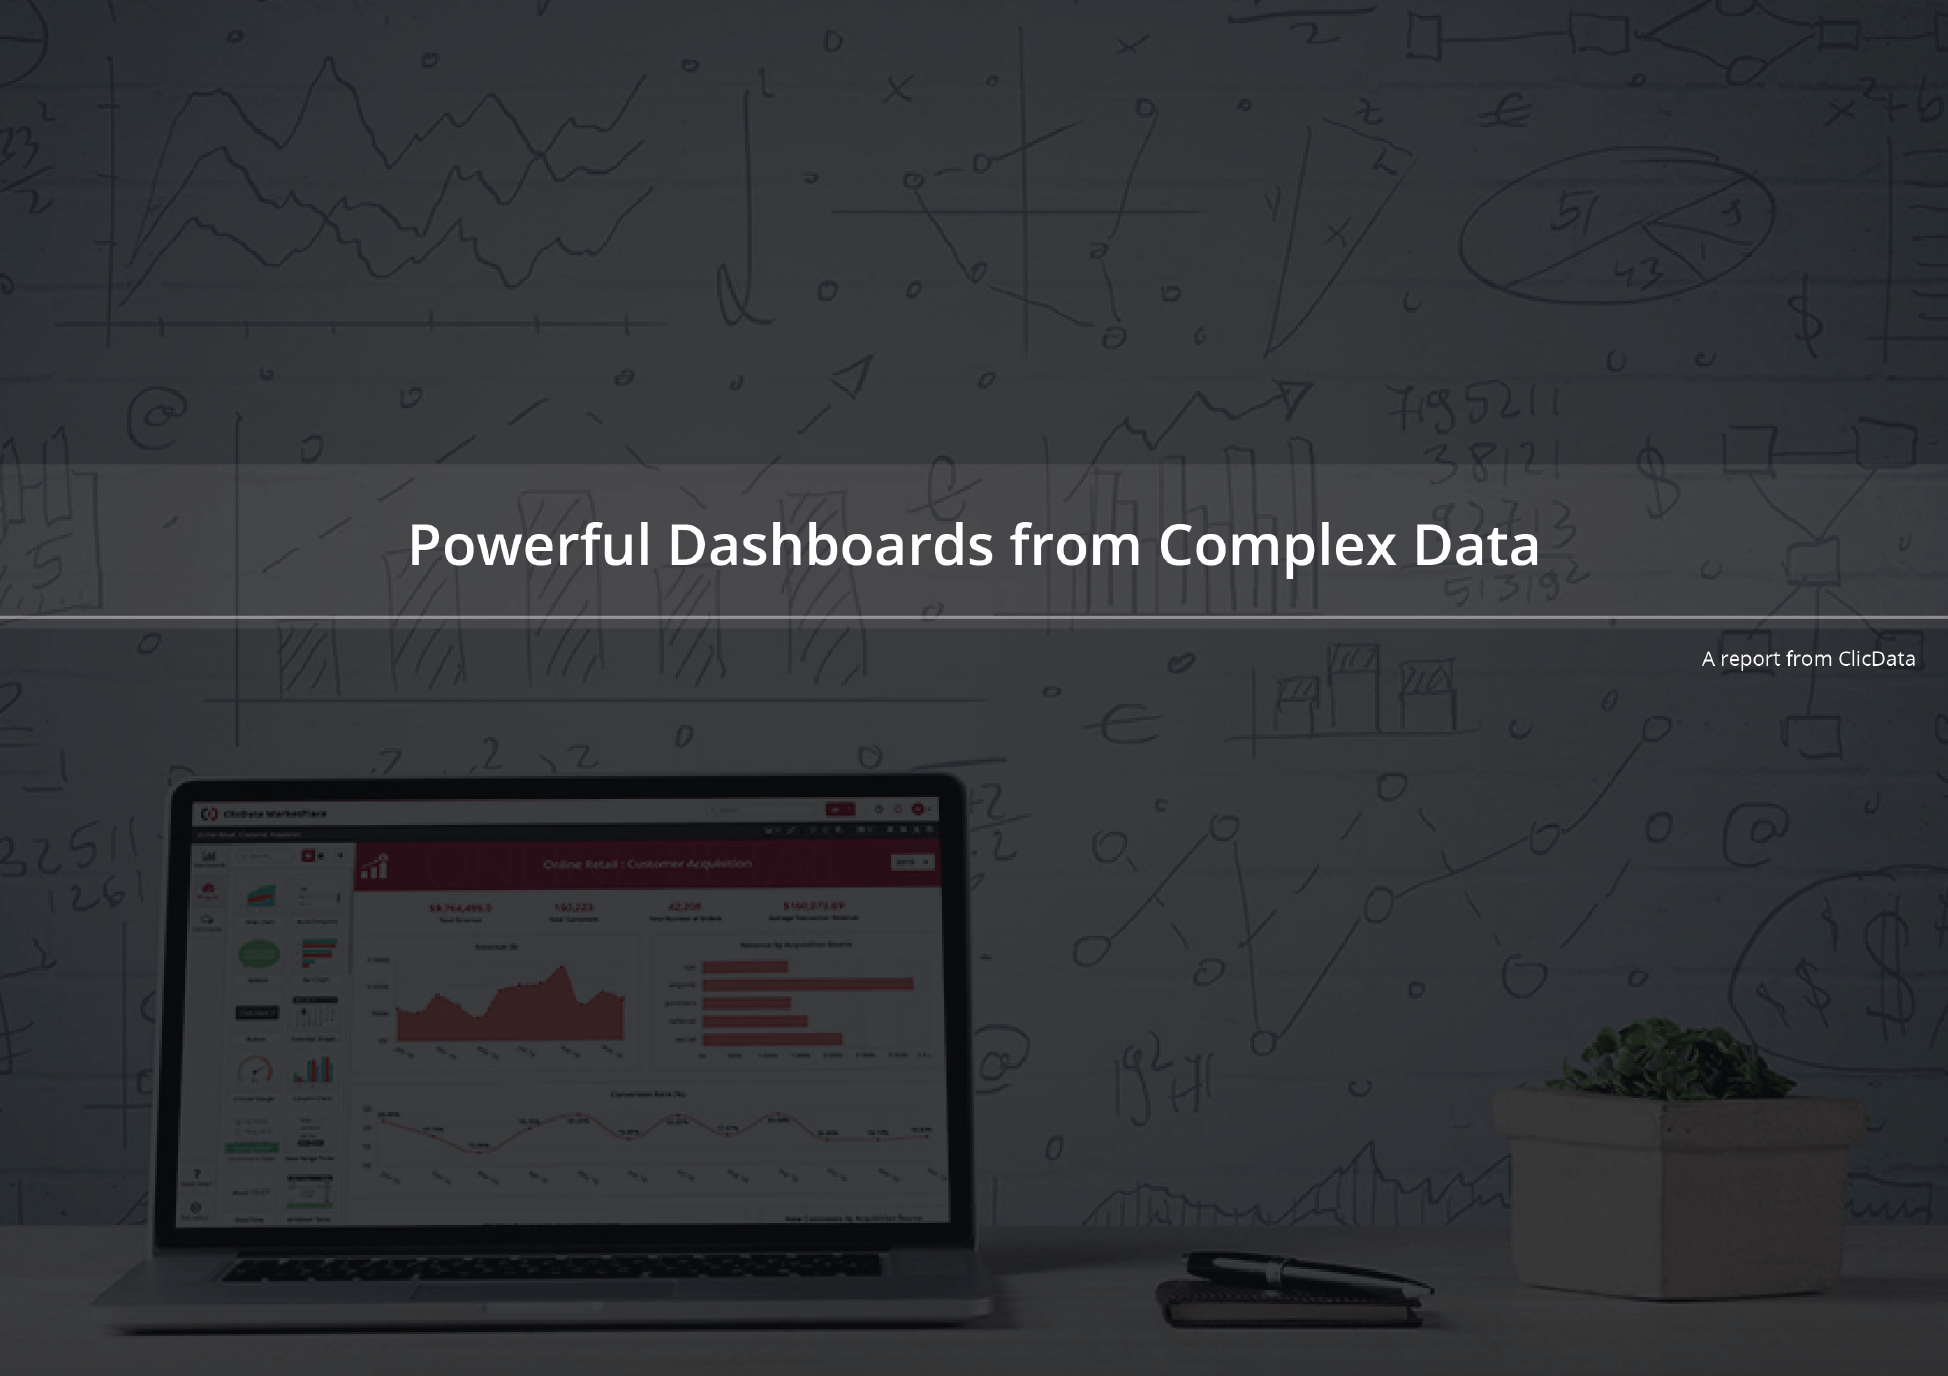 Powerful-Dashboards-from-Complex-Data